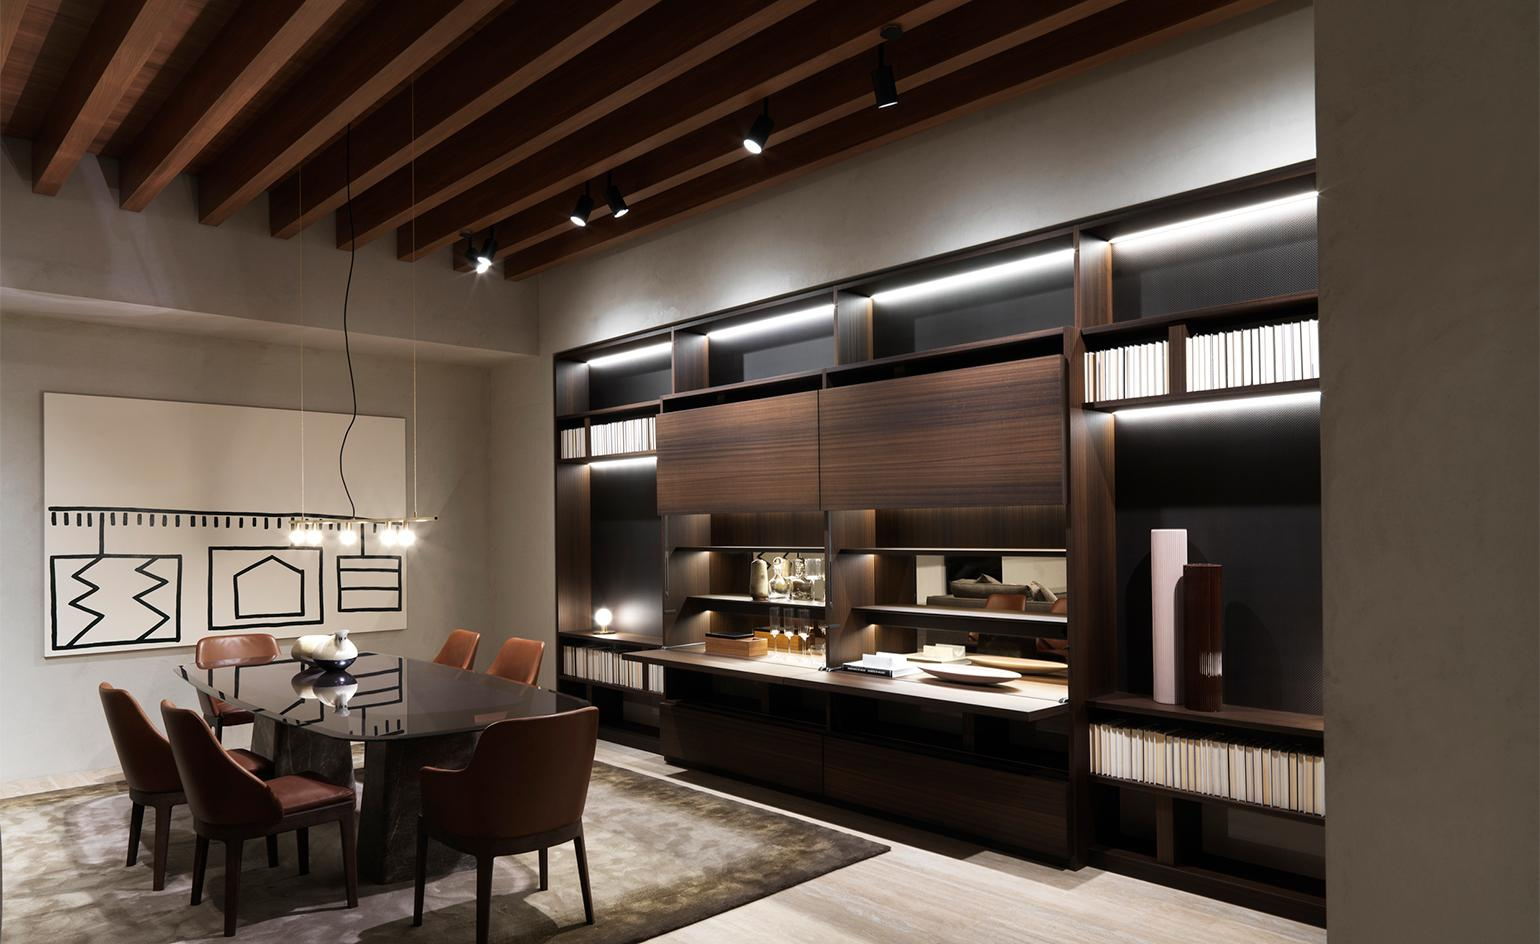 A furniture retail haven in New York nods to the architecture of Italian palazzos